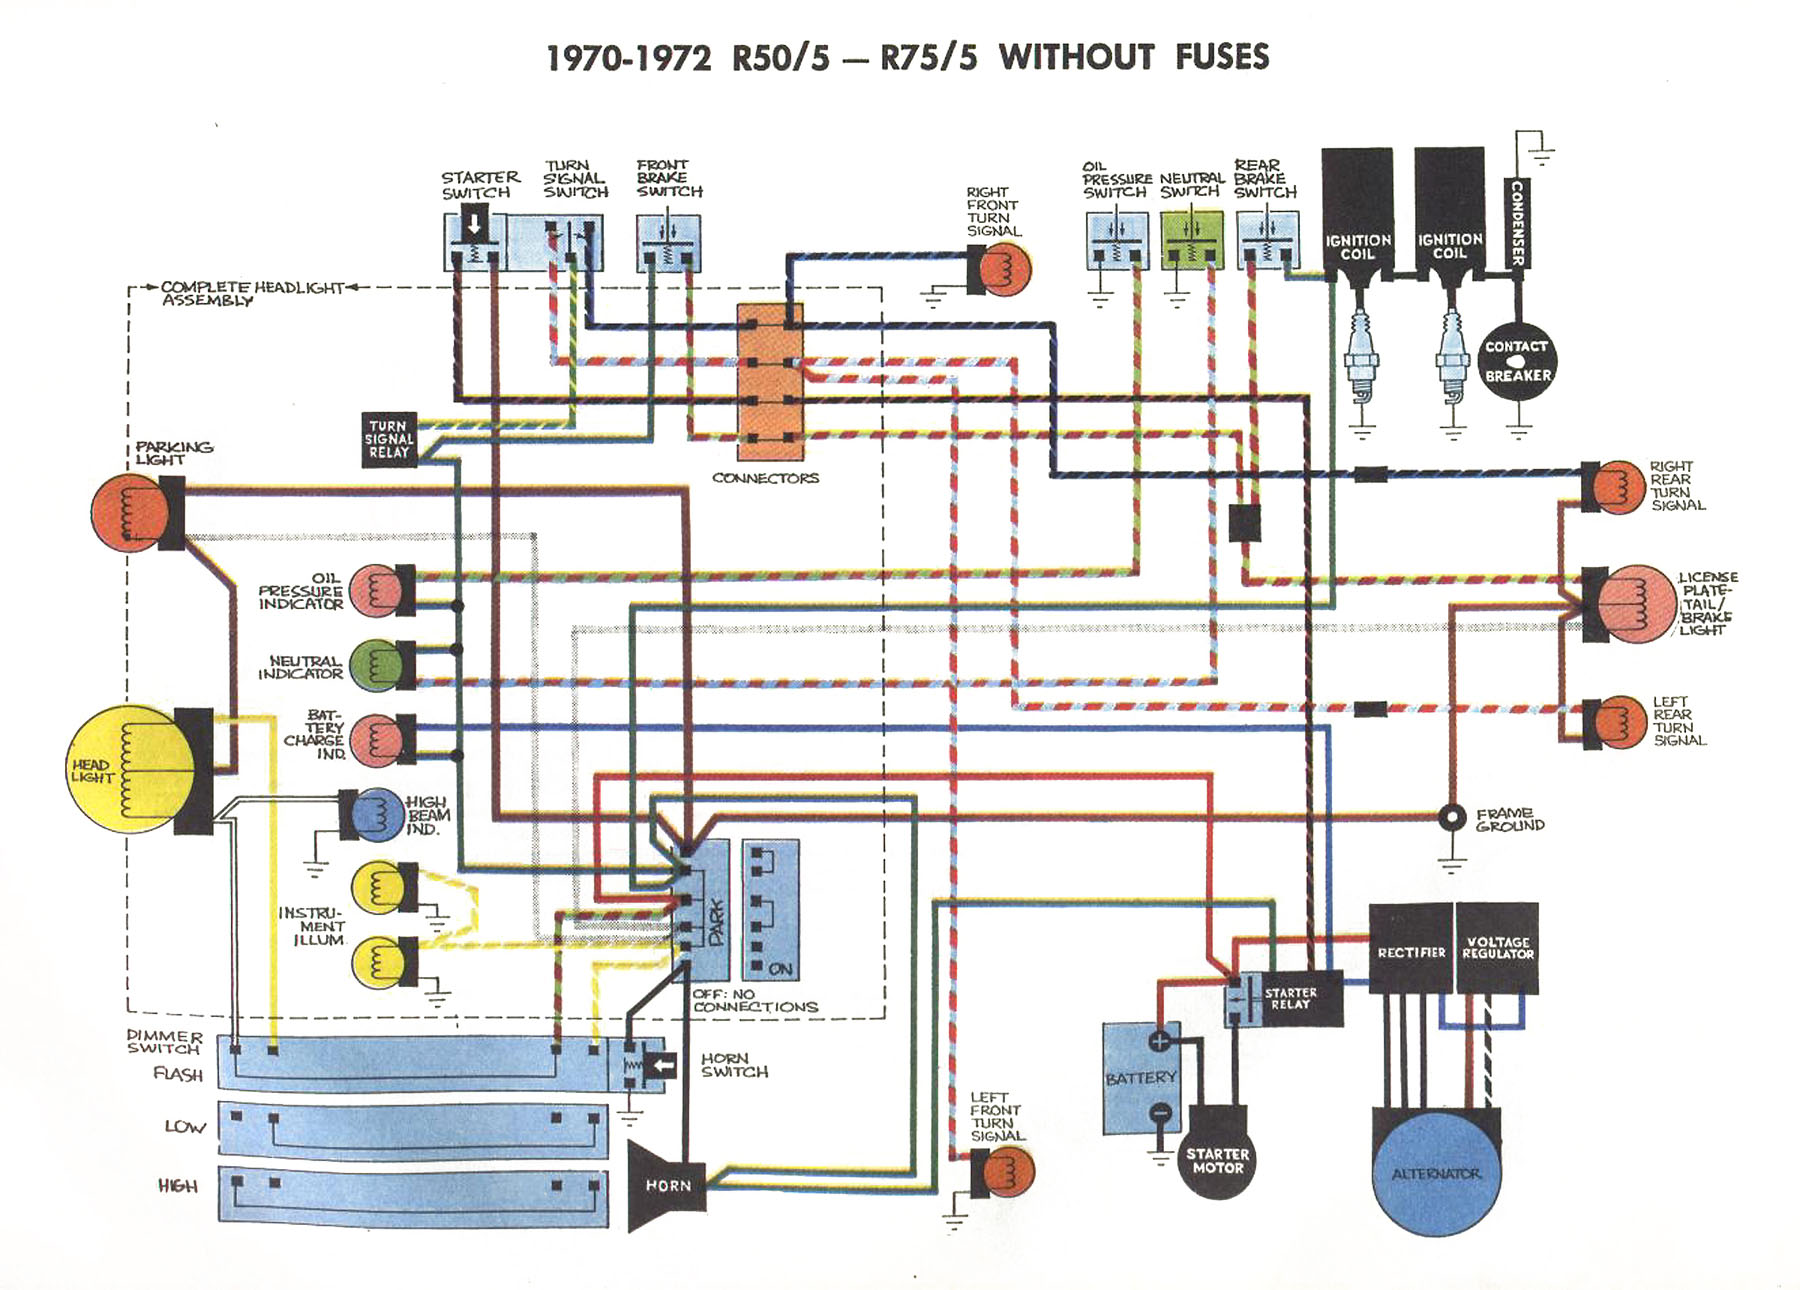 5_unfused_schematic 5 united articles wiring diagrams bmw r100rs gauge wiring diagram at crackthecode.co